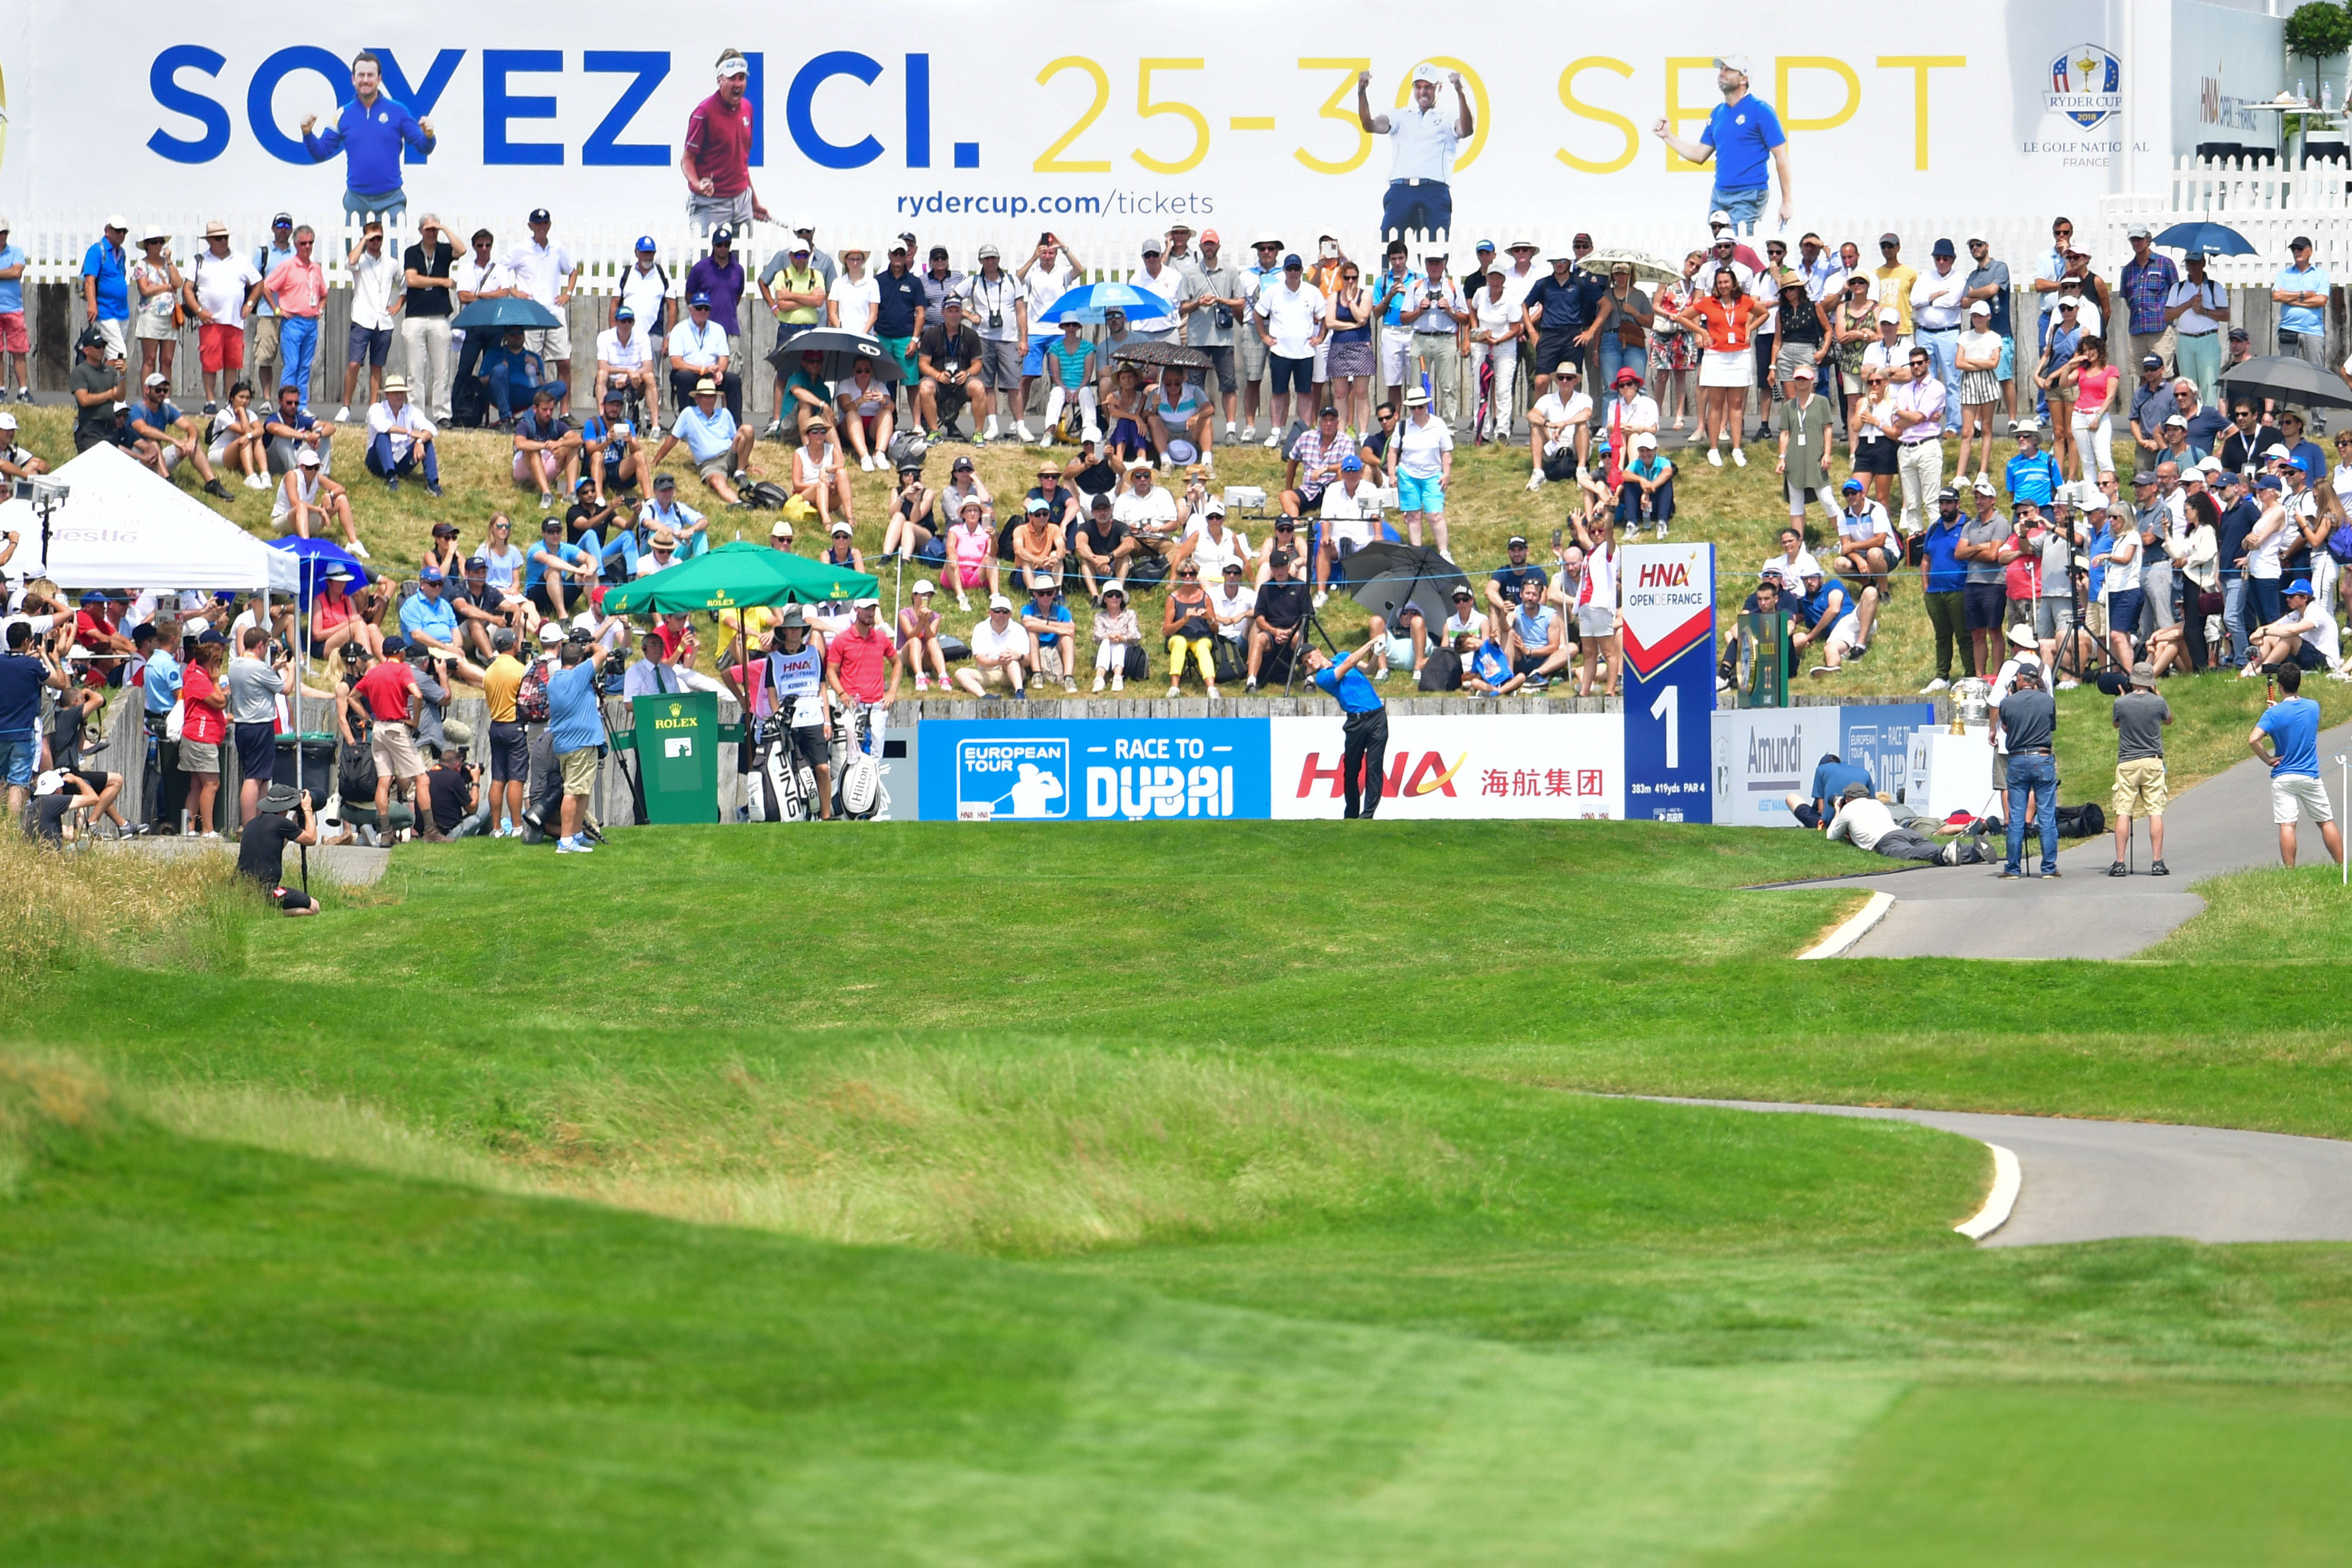 L'Open de France 2020 aura lieu au Golf National